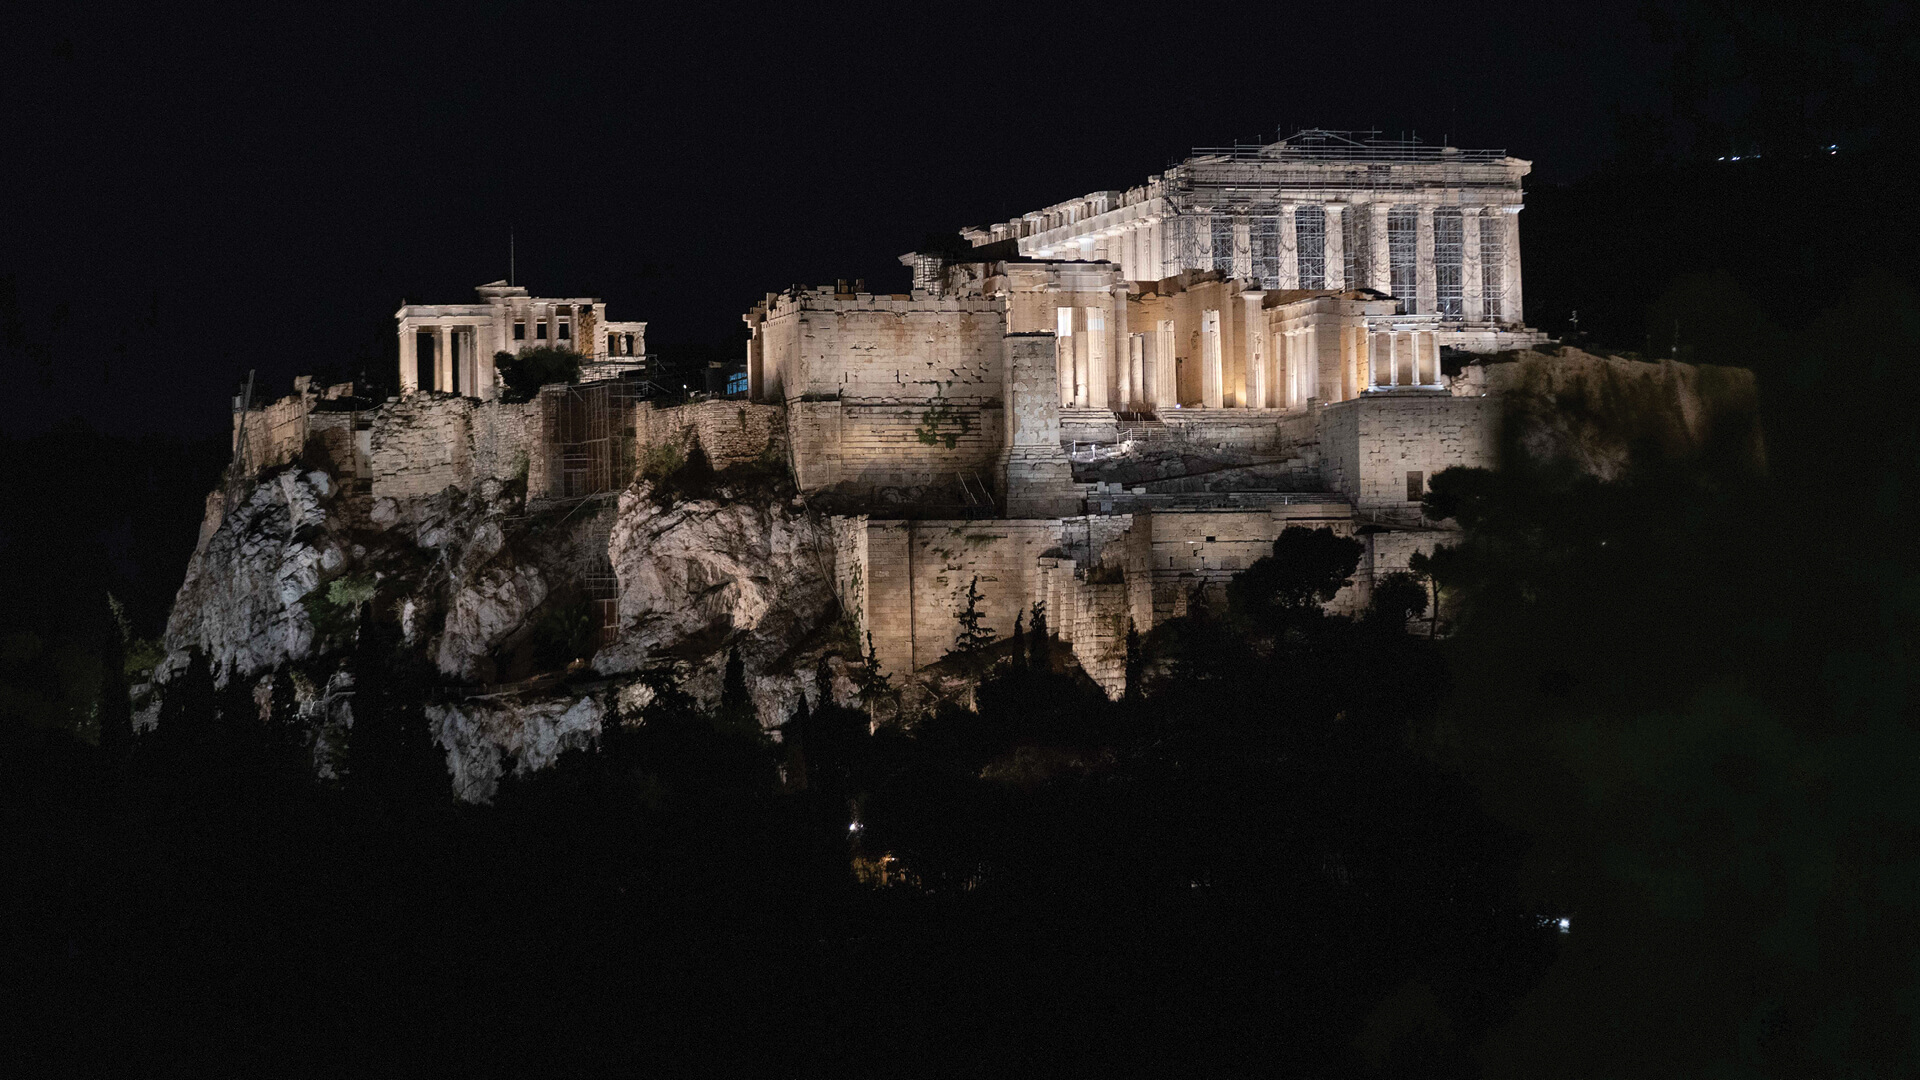 The Athenian Acropolis sits on the top of a limestone ridge that cuts through the Attica plateau | Acropolis of Athens by Onassis Foundation designed by Eleftheria Deko | STIRworld